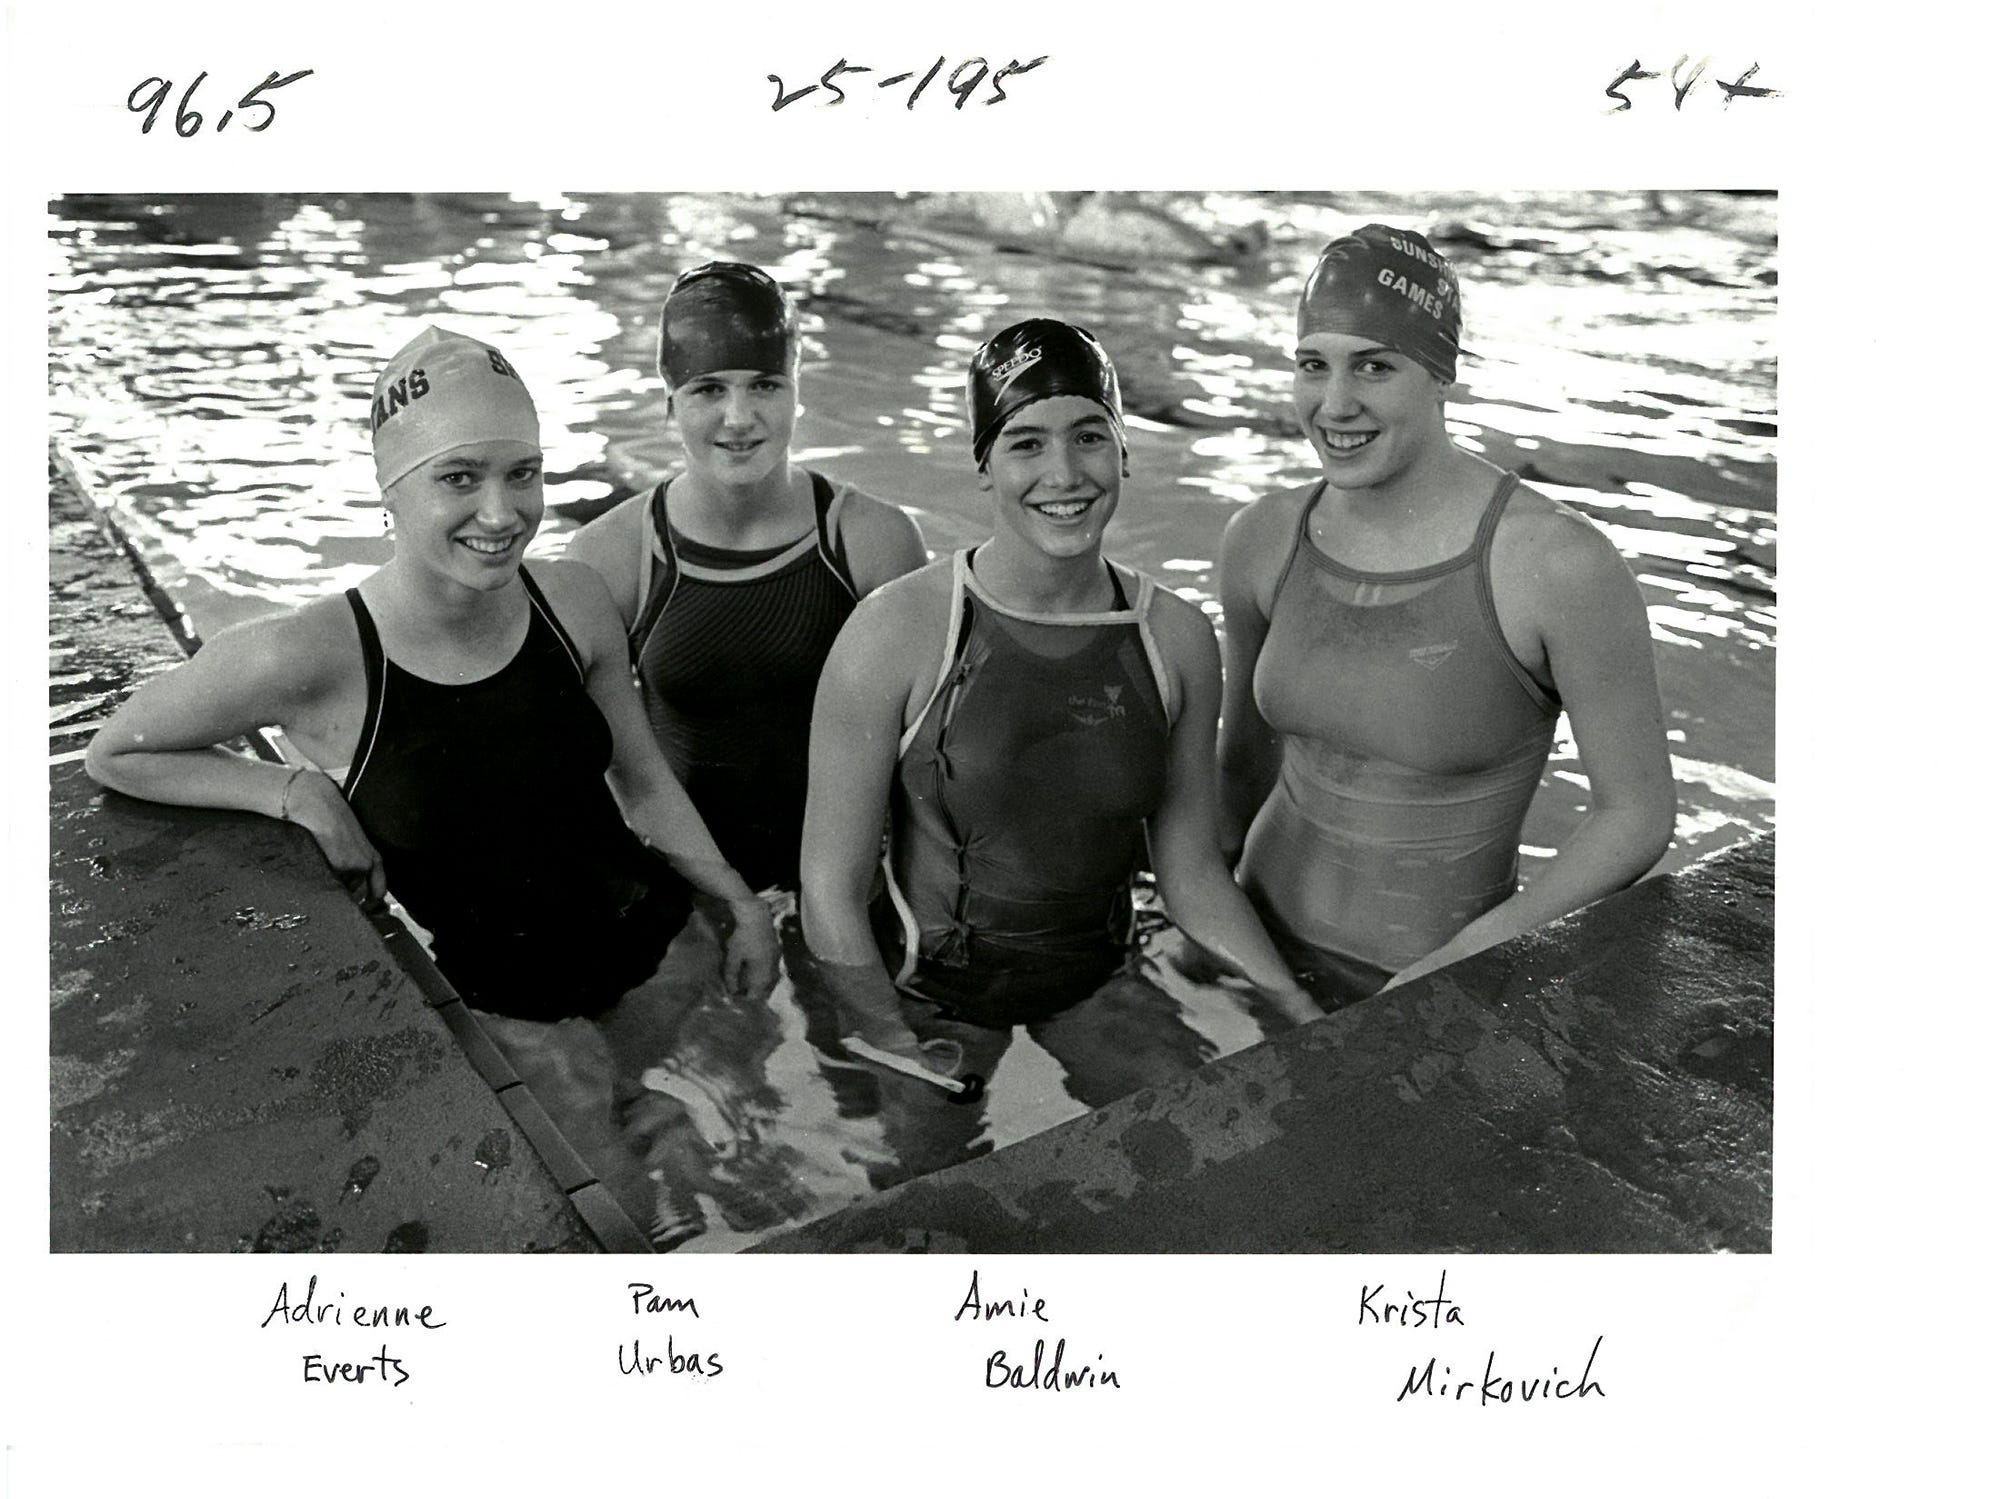 11/17/87